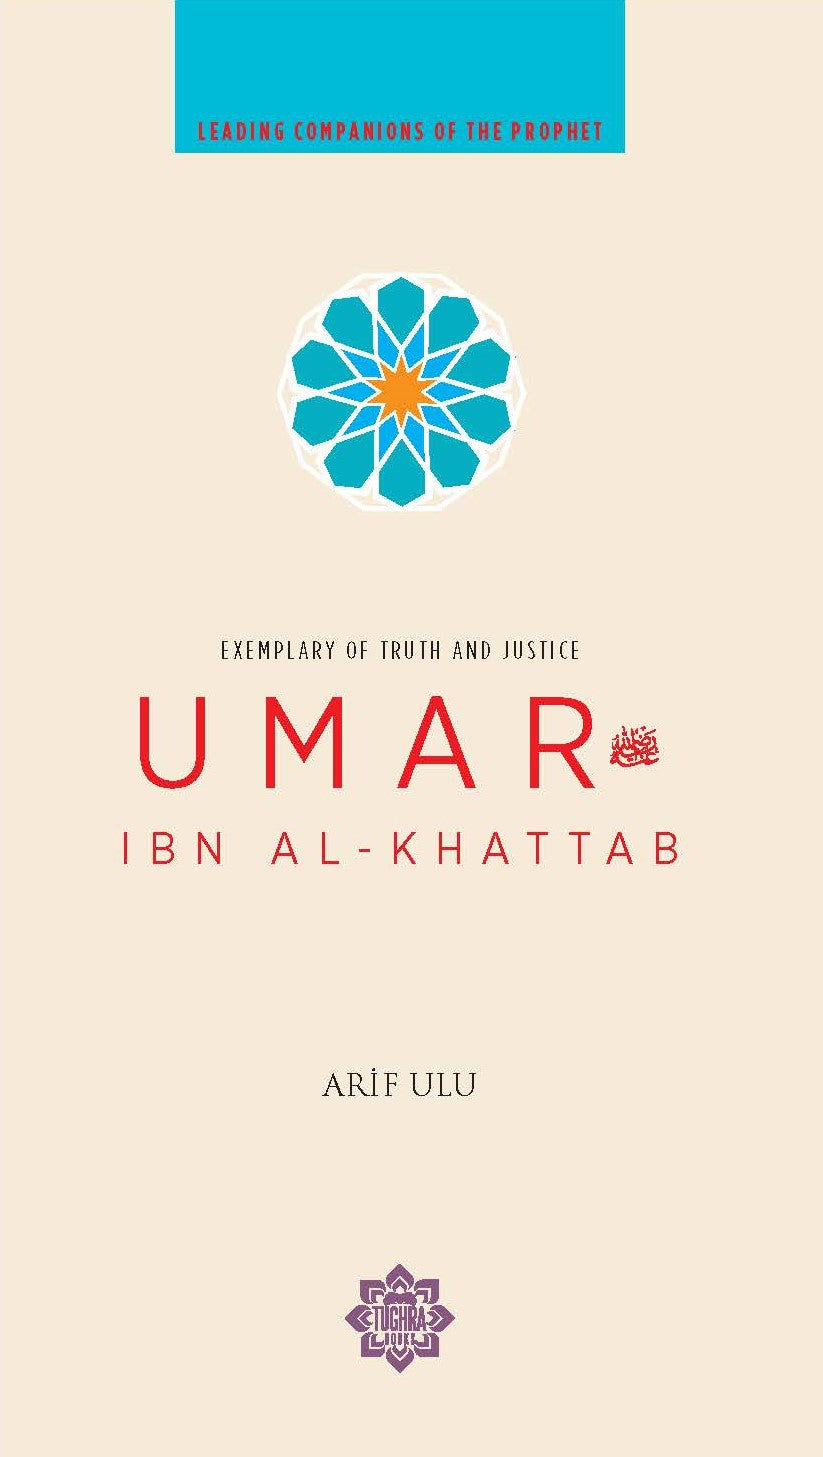 Leading Companions Of The Prophet: Umar Ibn Al-Khattab